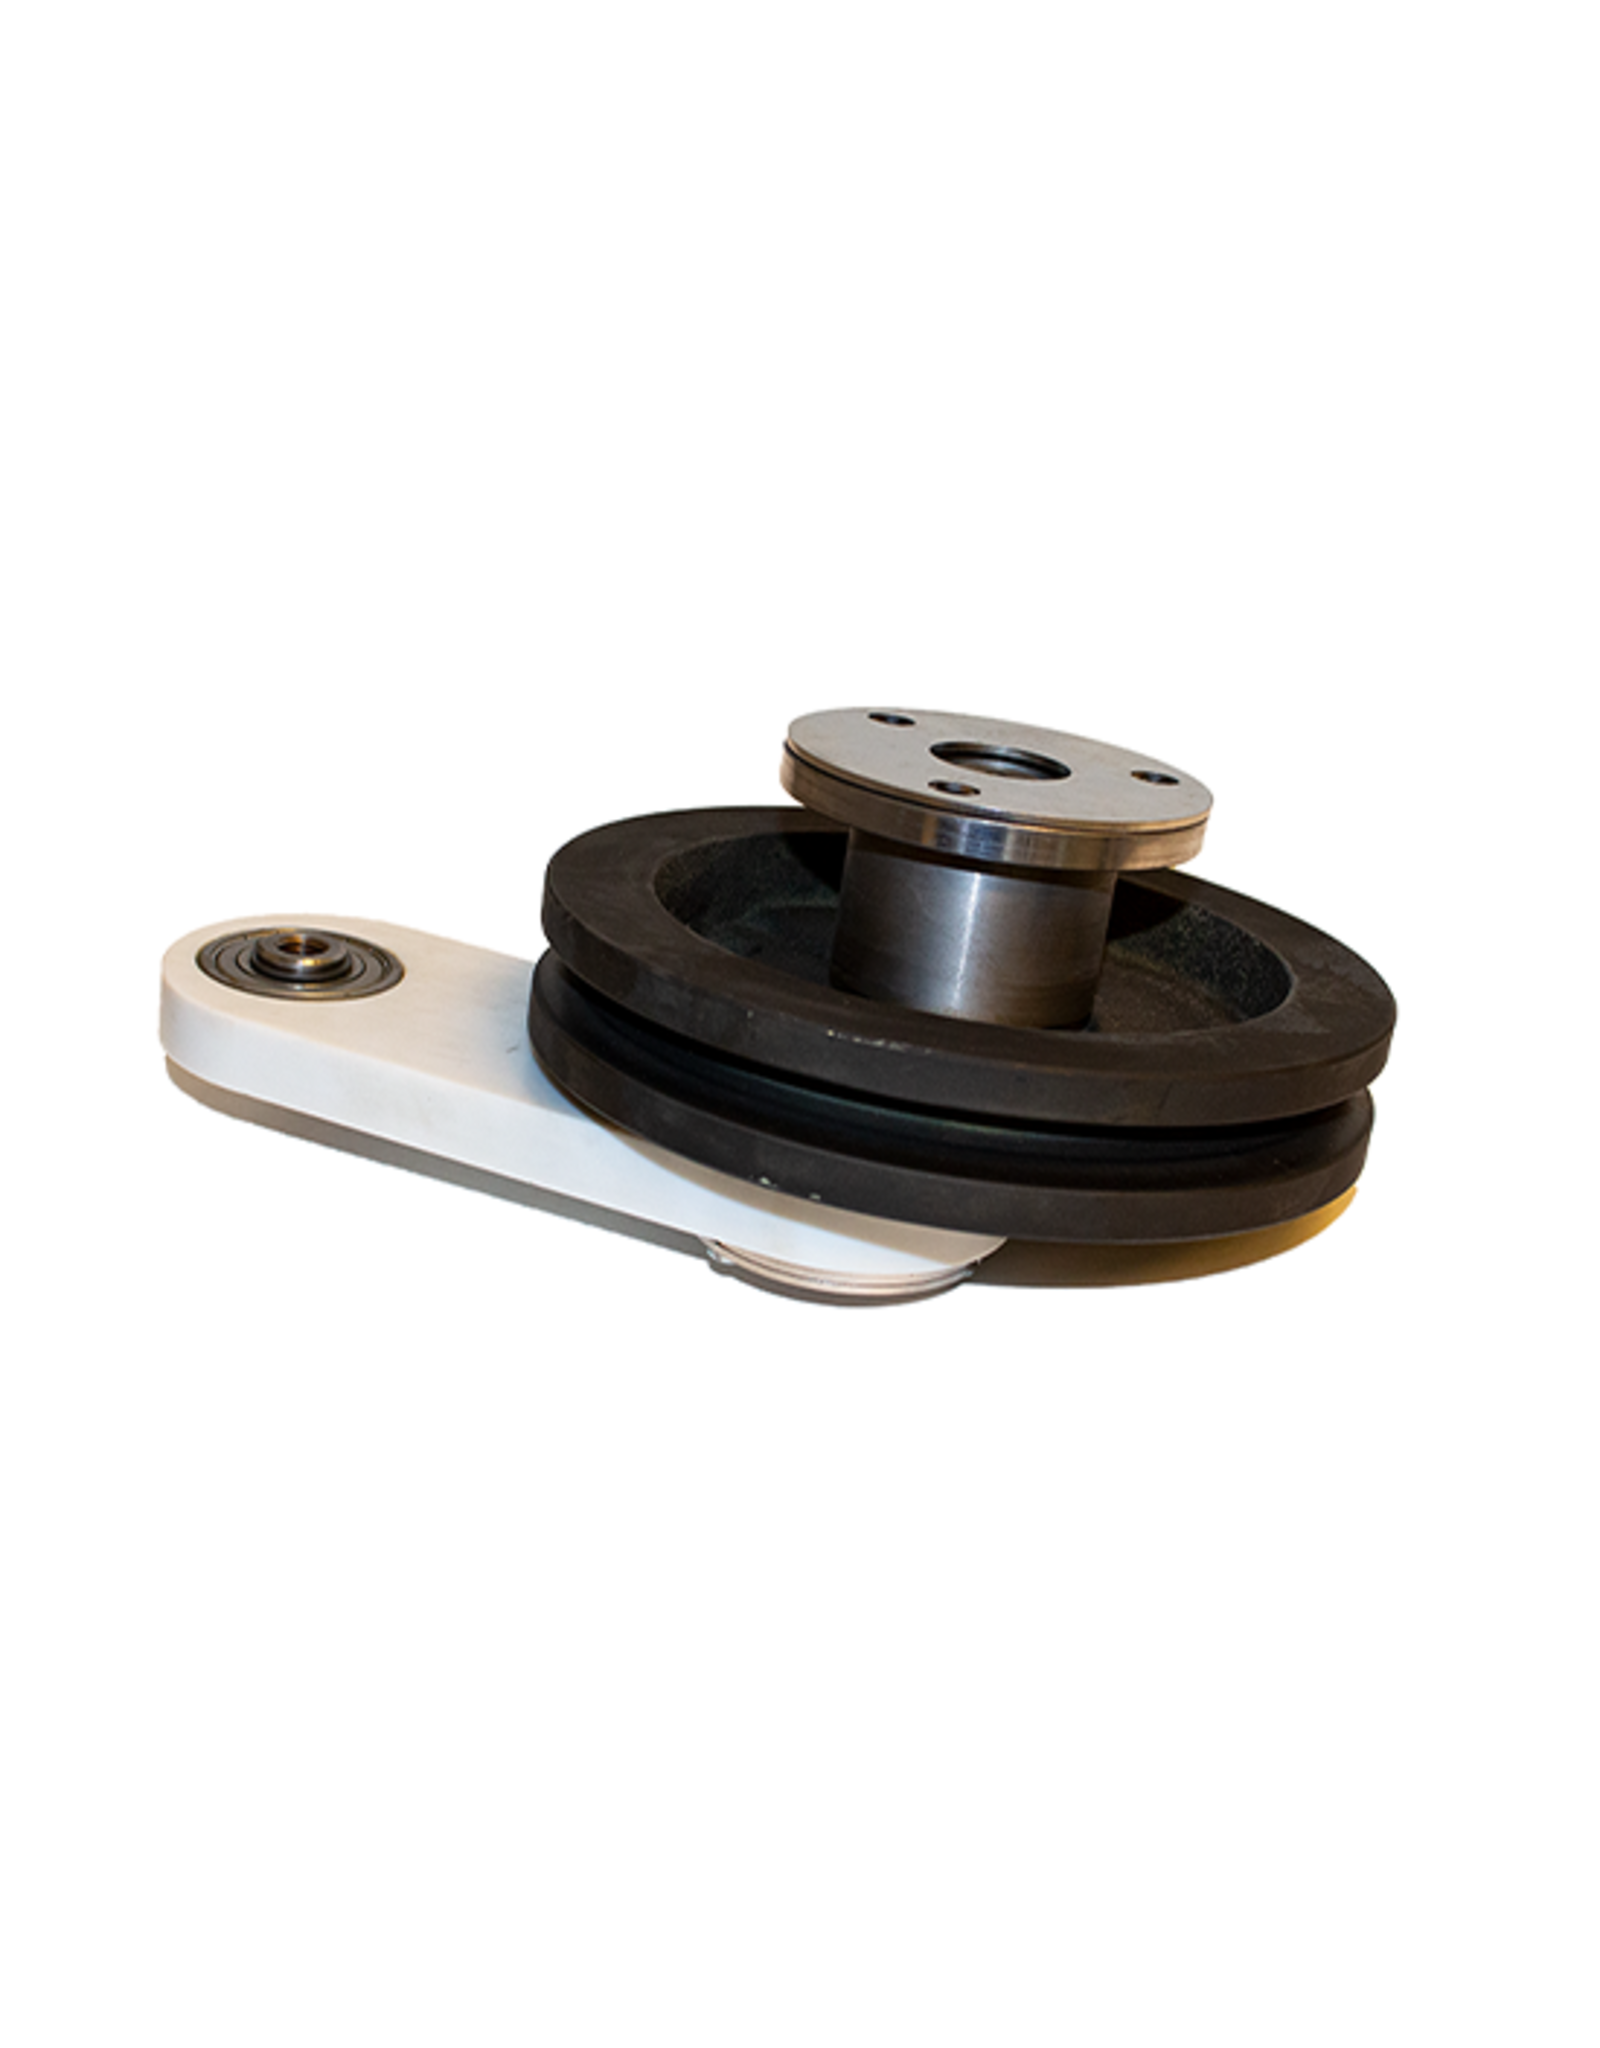 VLB Bread Slicers Flywheel with connecting rod, bearings and accesories